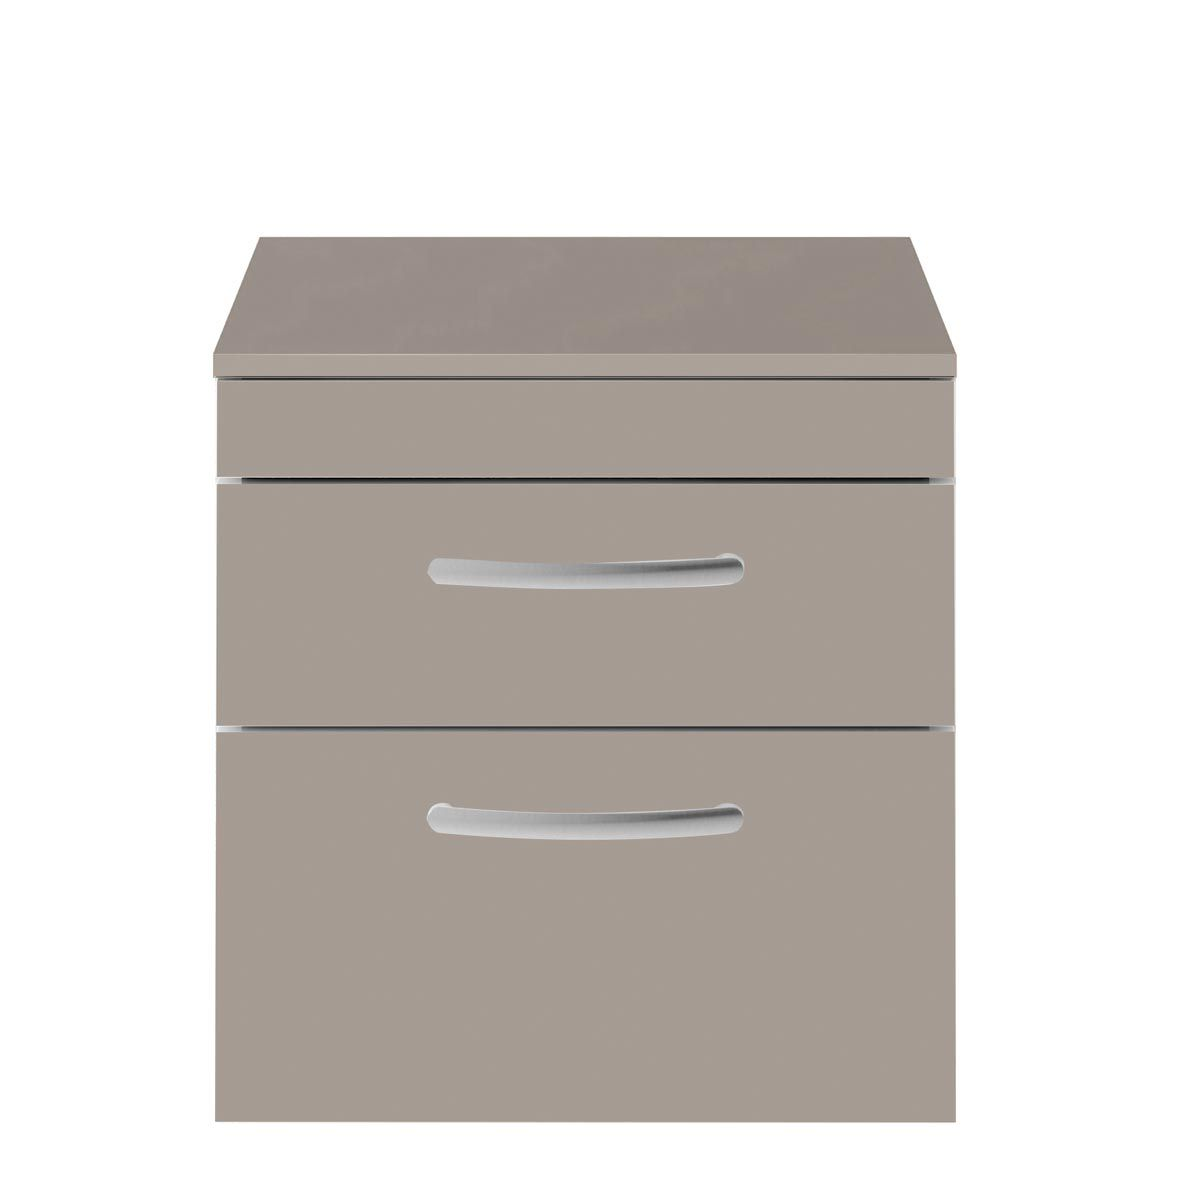 Nuie Athena Stone Grey 2 Drawer Wall Hung Vanity Unit with 18mm Worktop 500mm